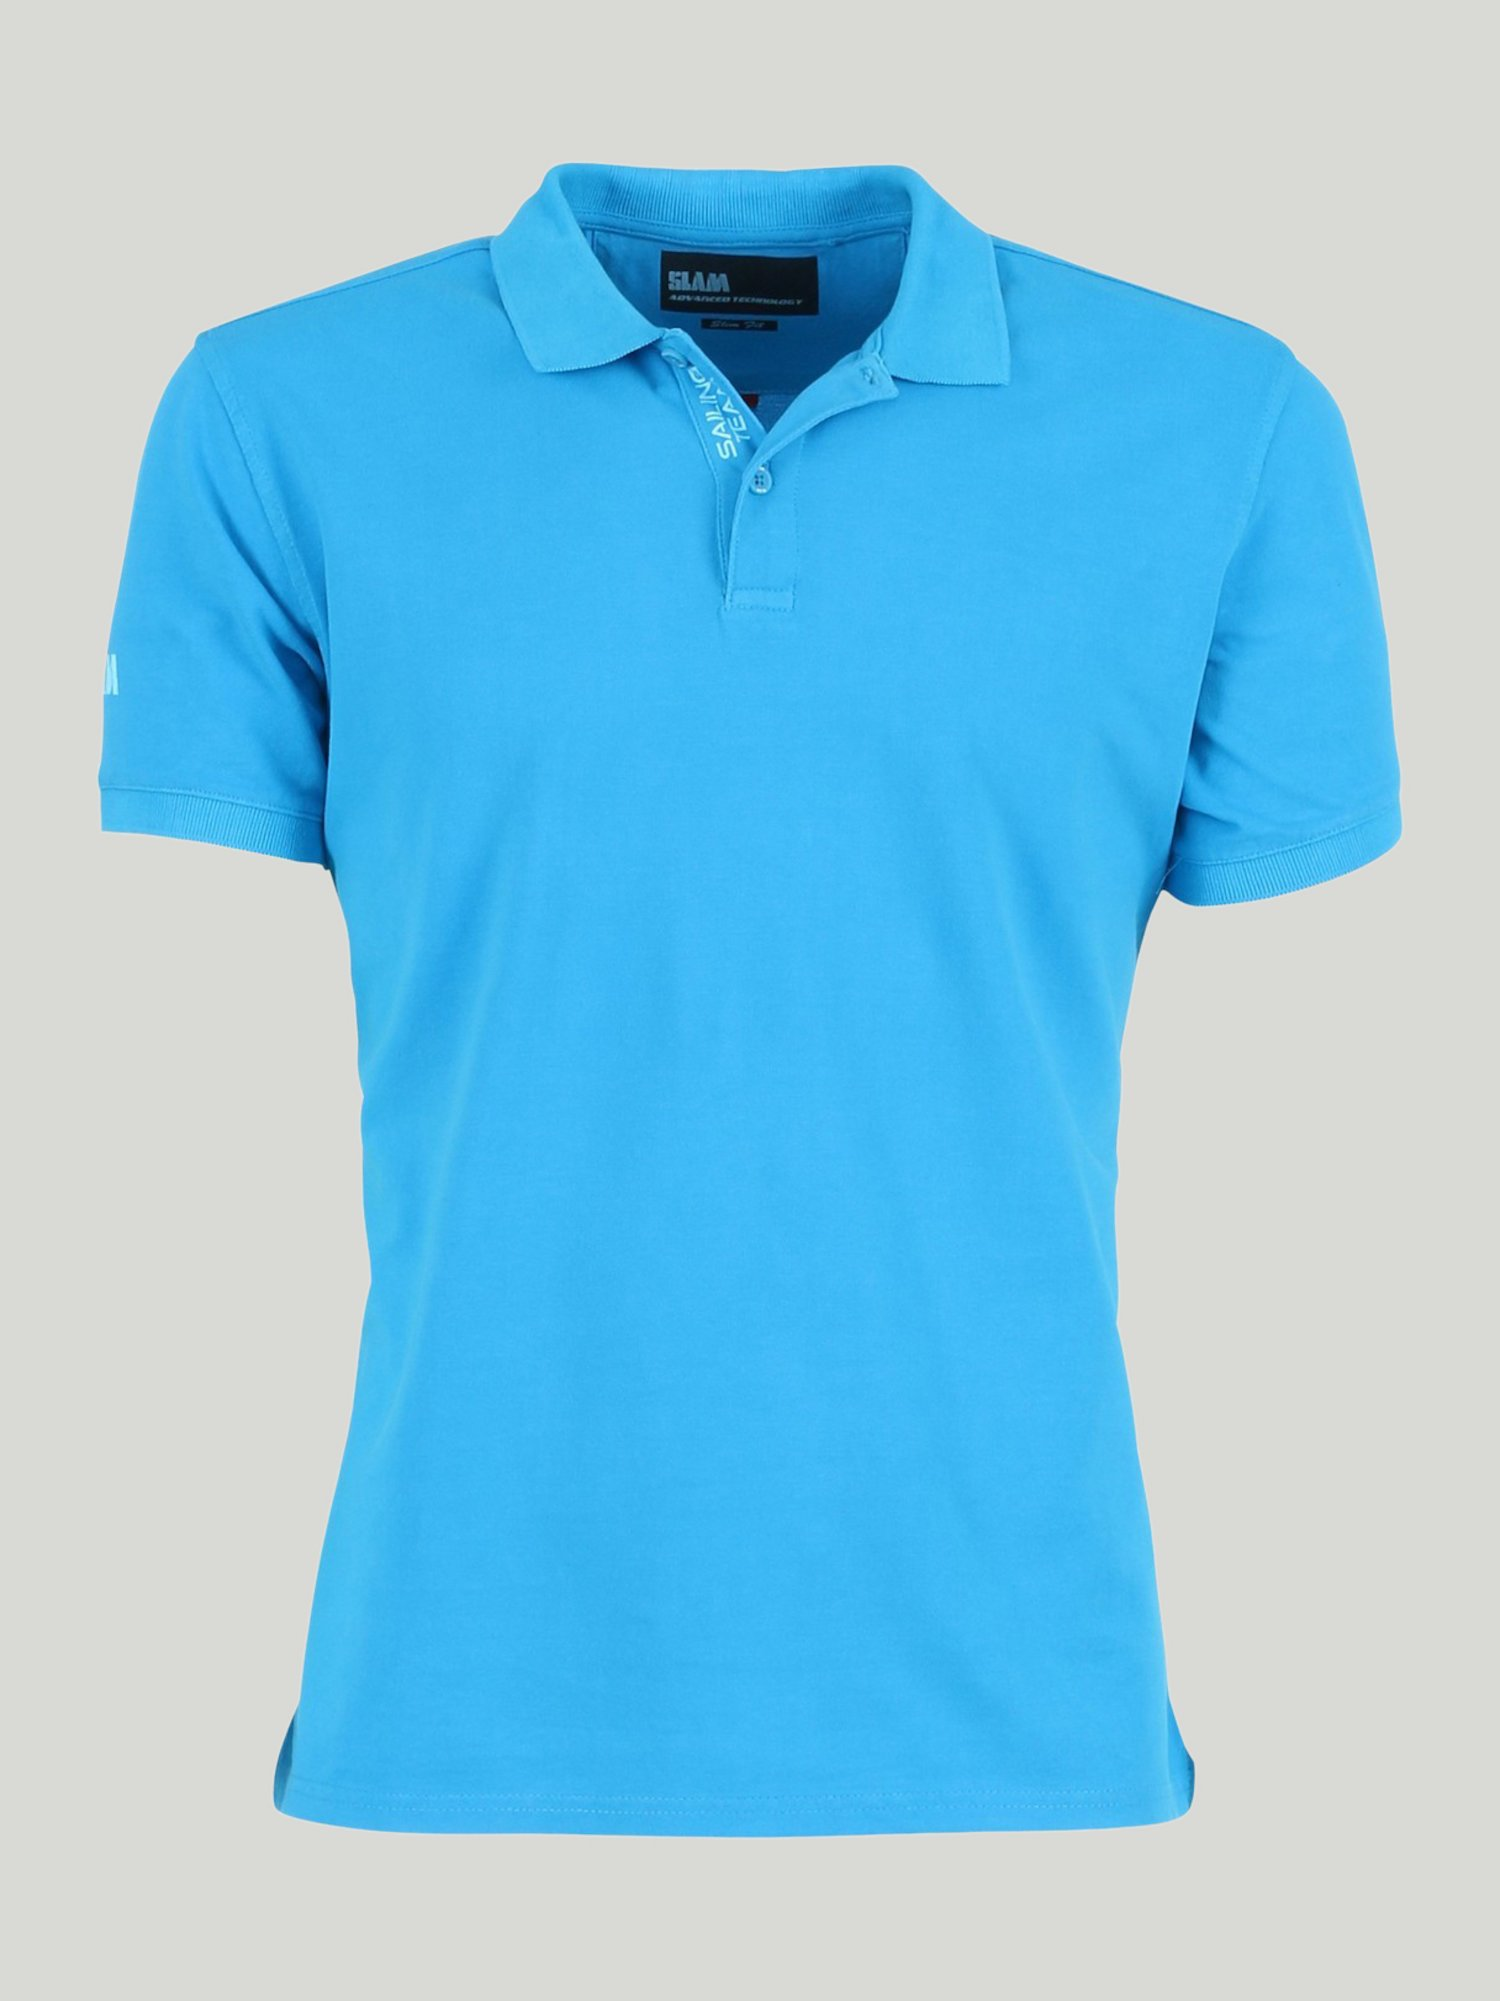 Cutro New polo shirt - Turquoise Neon